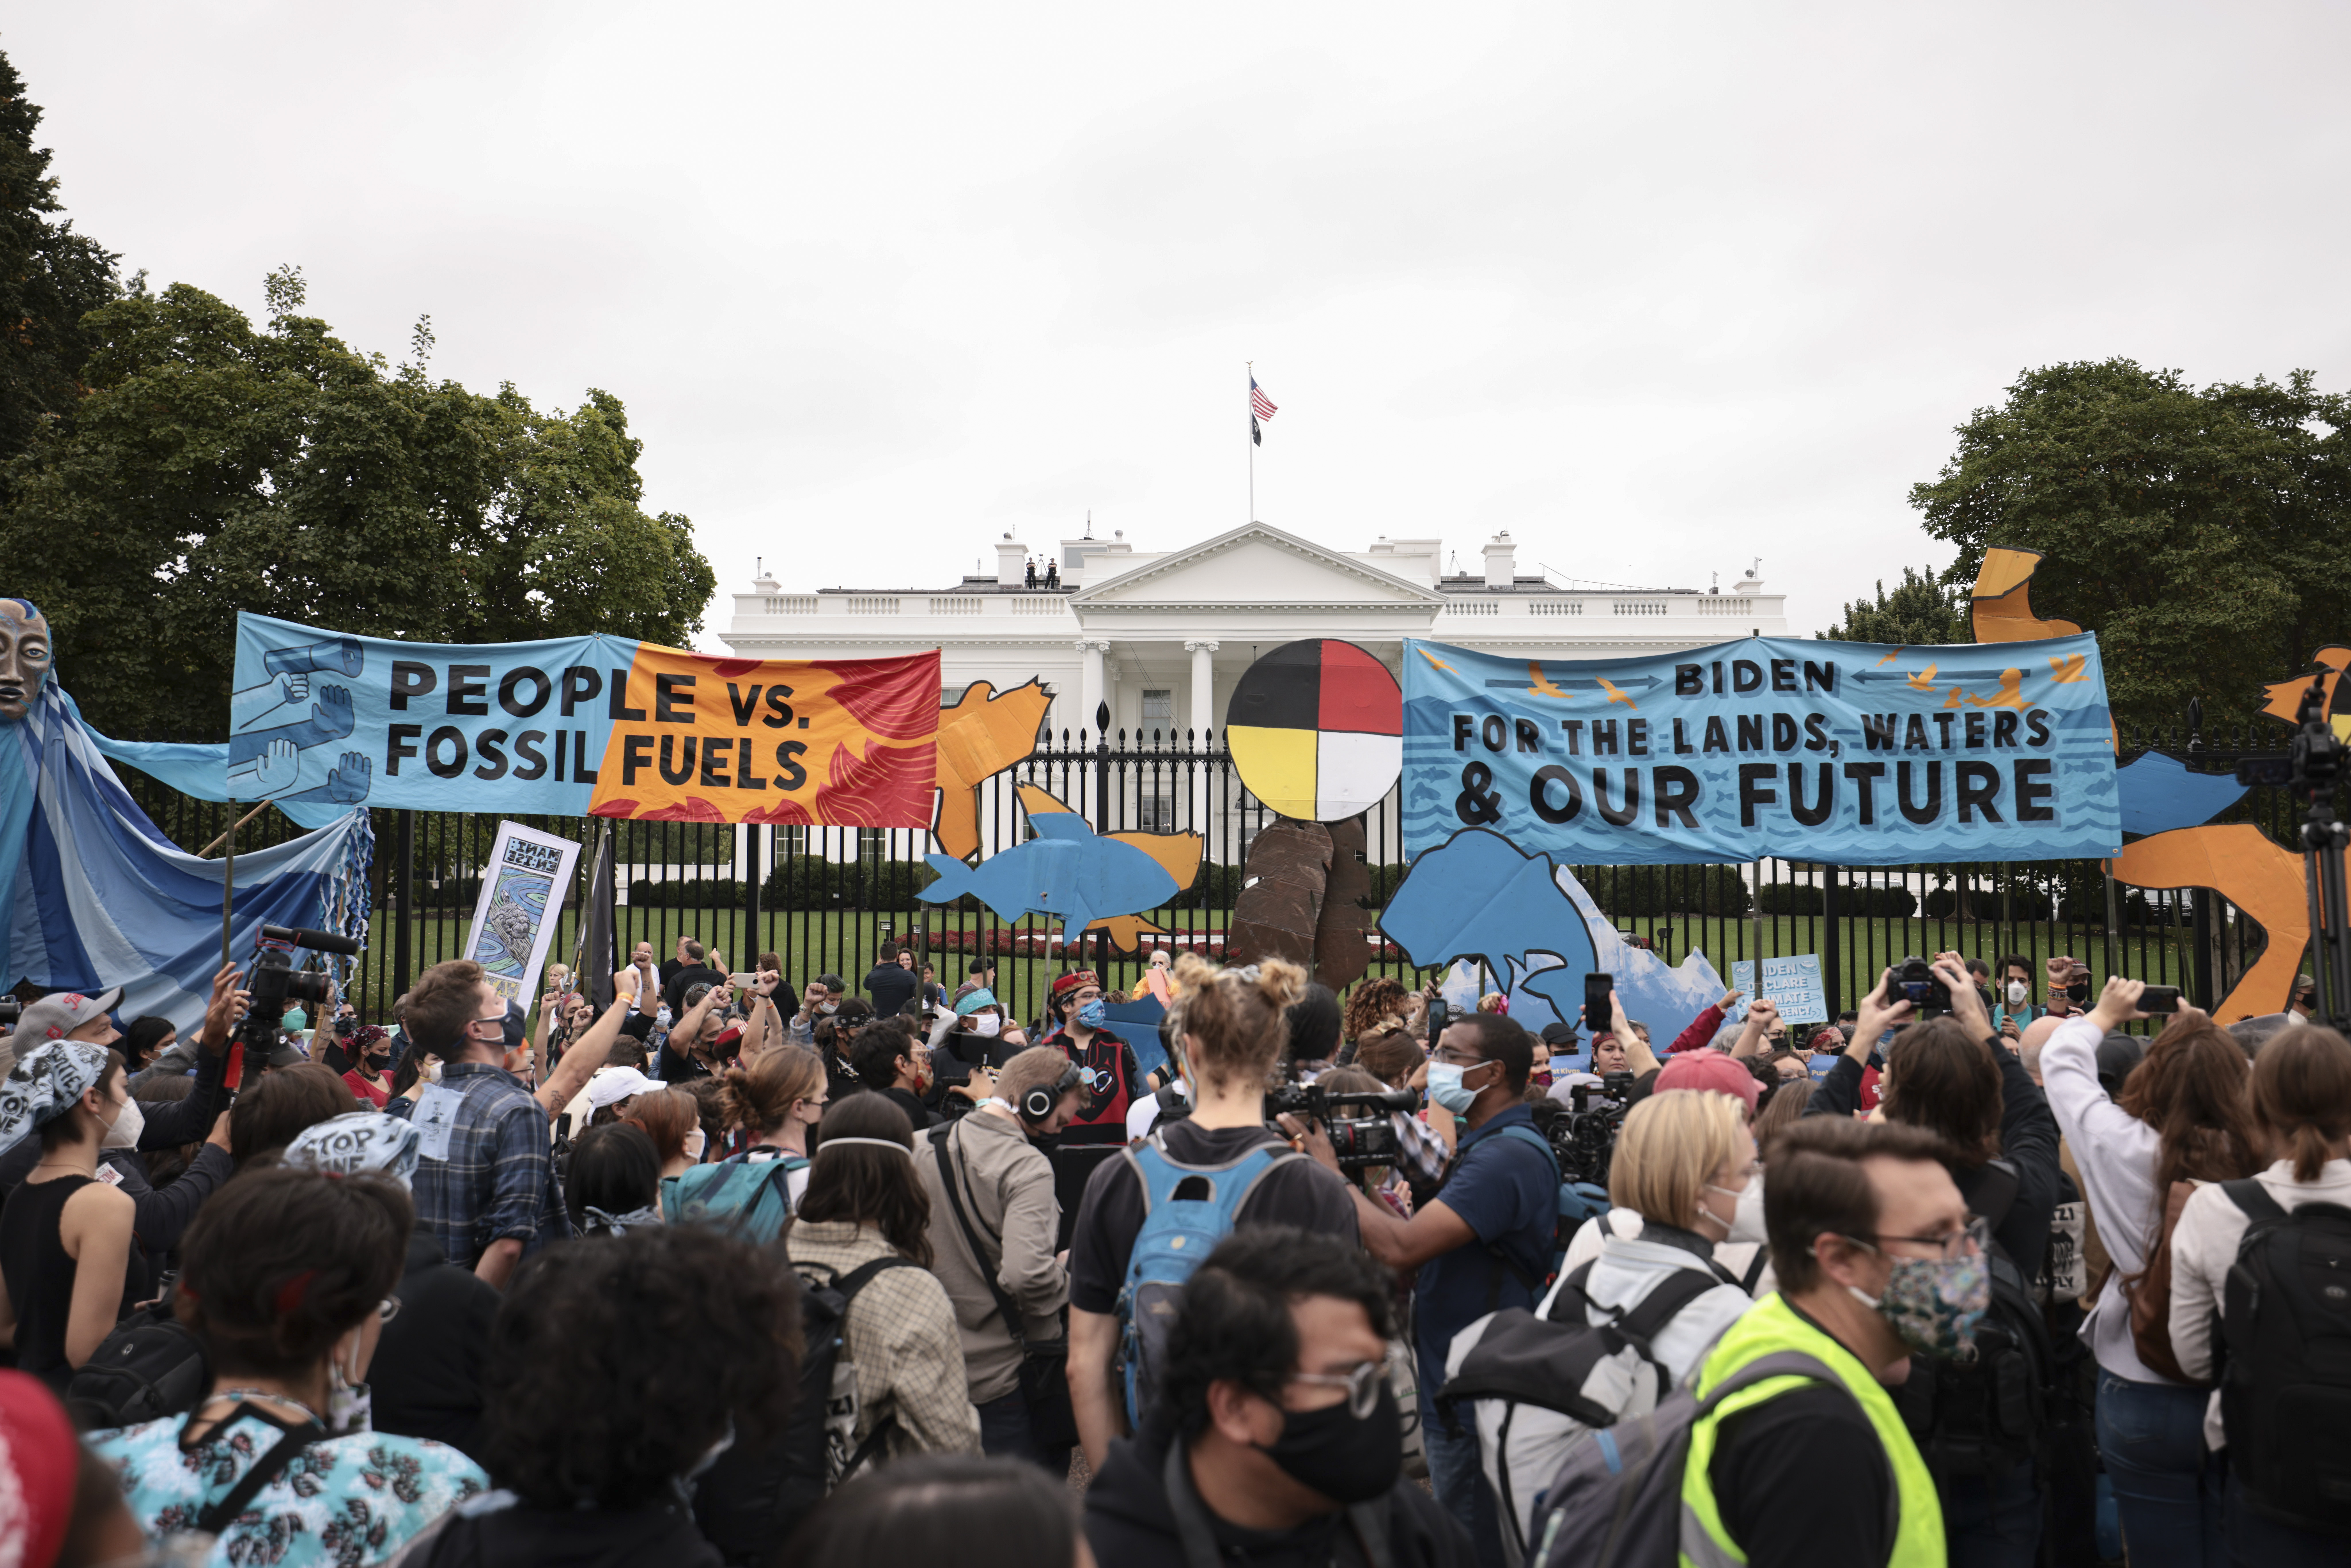 Demonstrators stand in front of the White House during a climate march on Monday in Washington, D.C. (Anna Moneymaker/Getty Images)